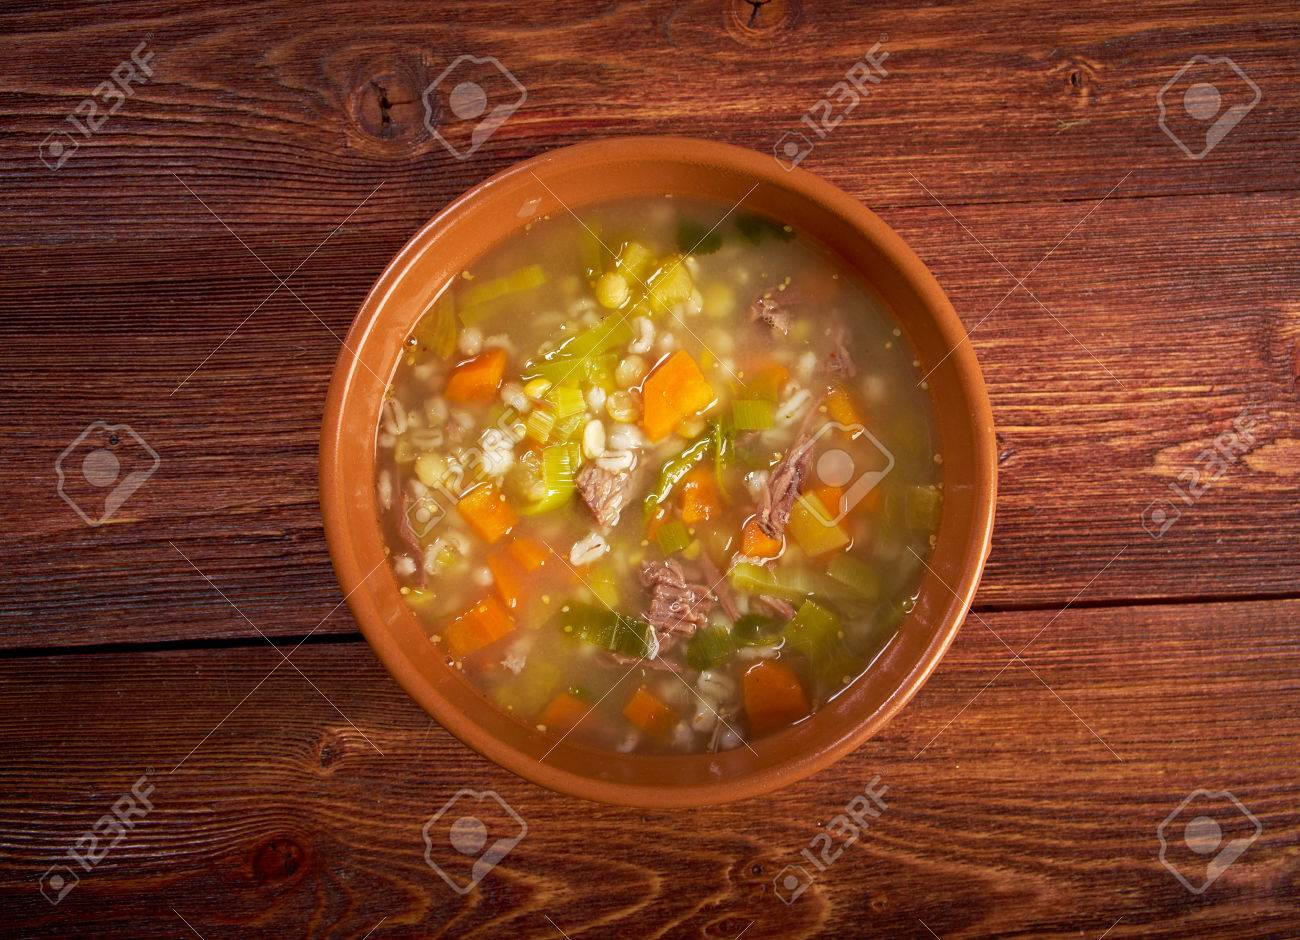 Scotch Broth Soupfarmhouse Kitchenold Fashioned Thrifty Soup Made From Meat On The